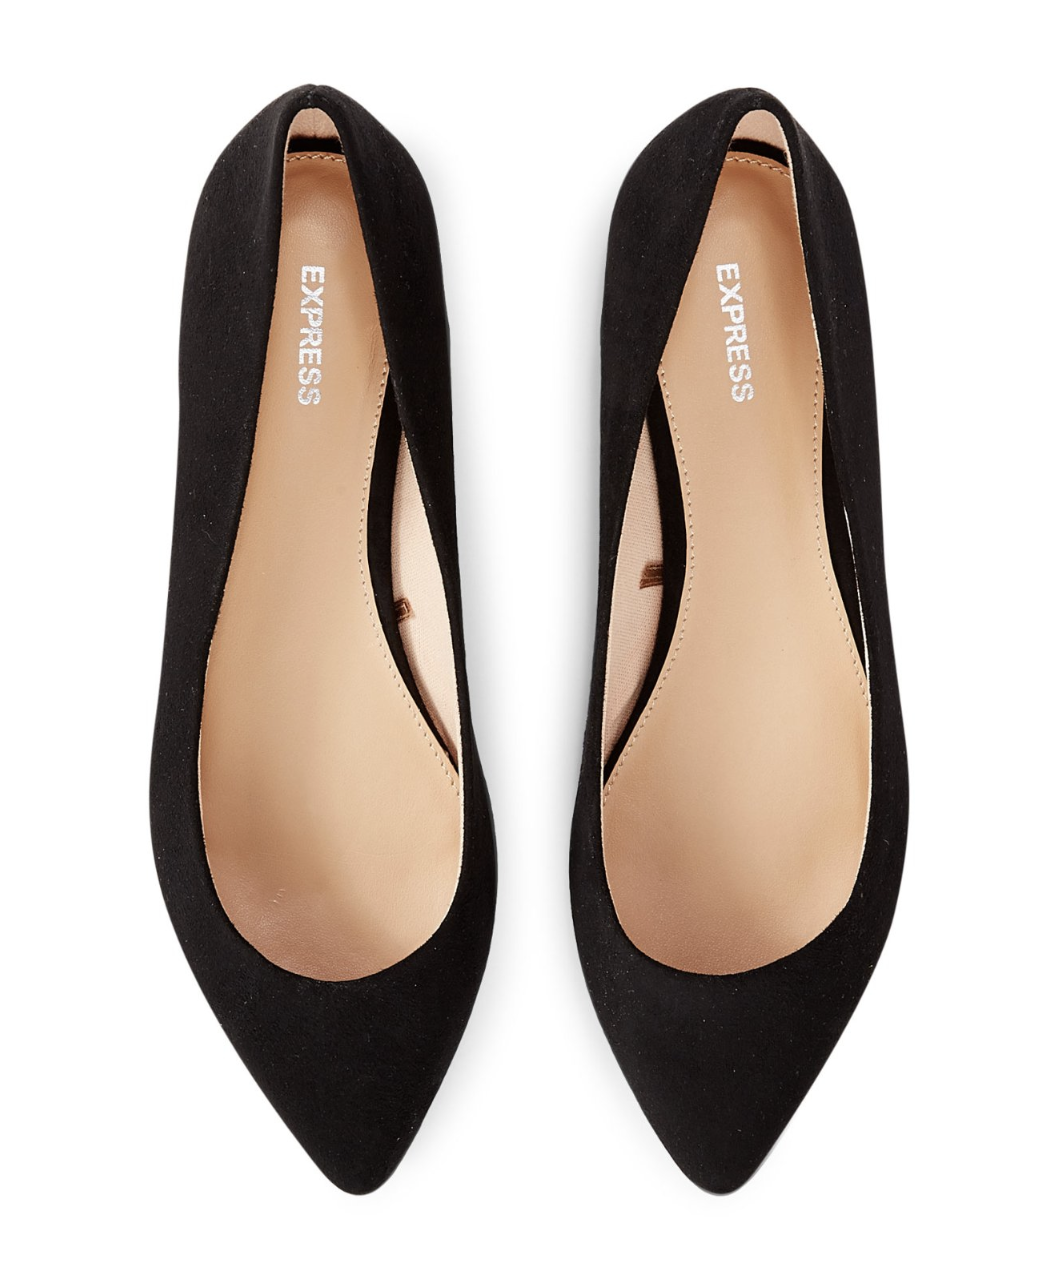 Occasions for all flats images